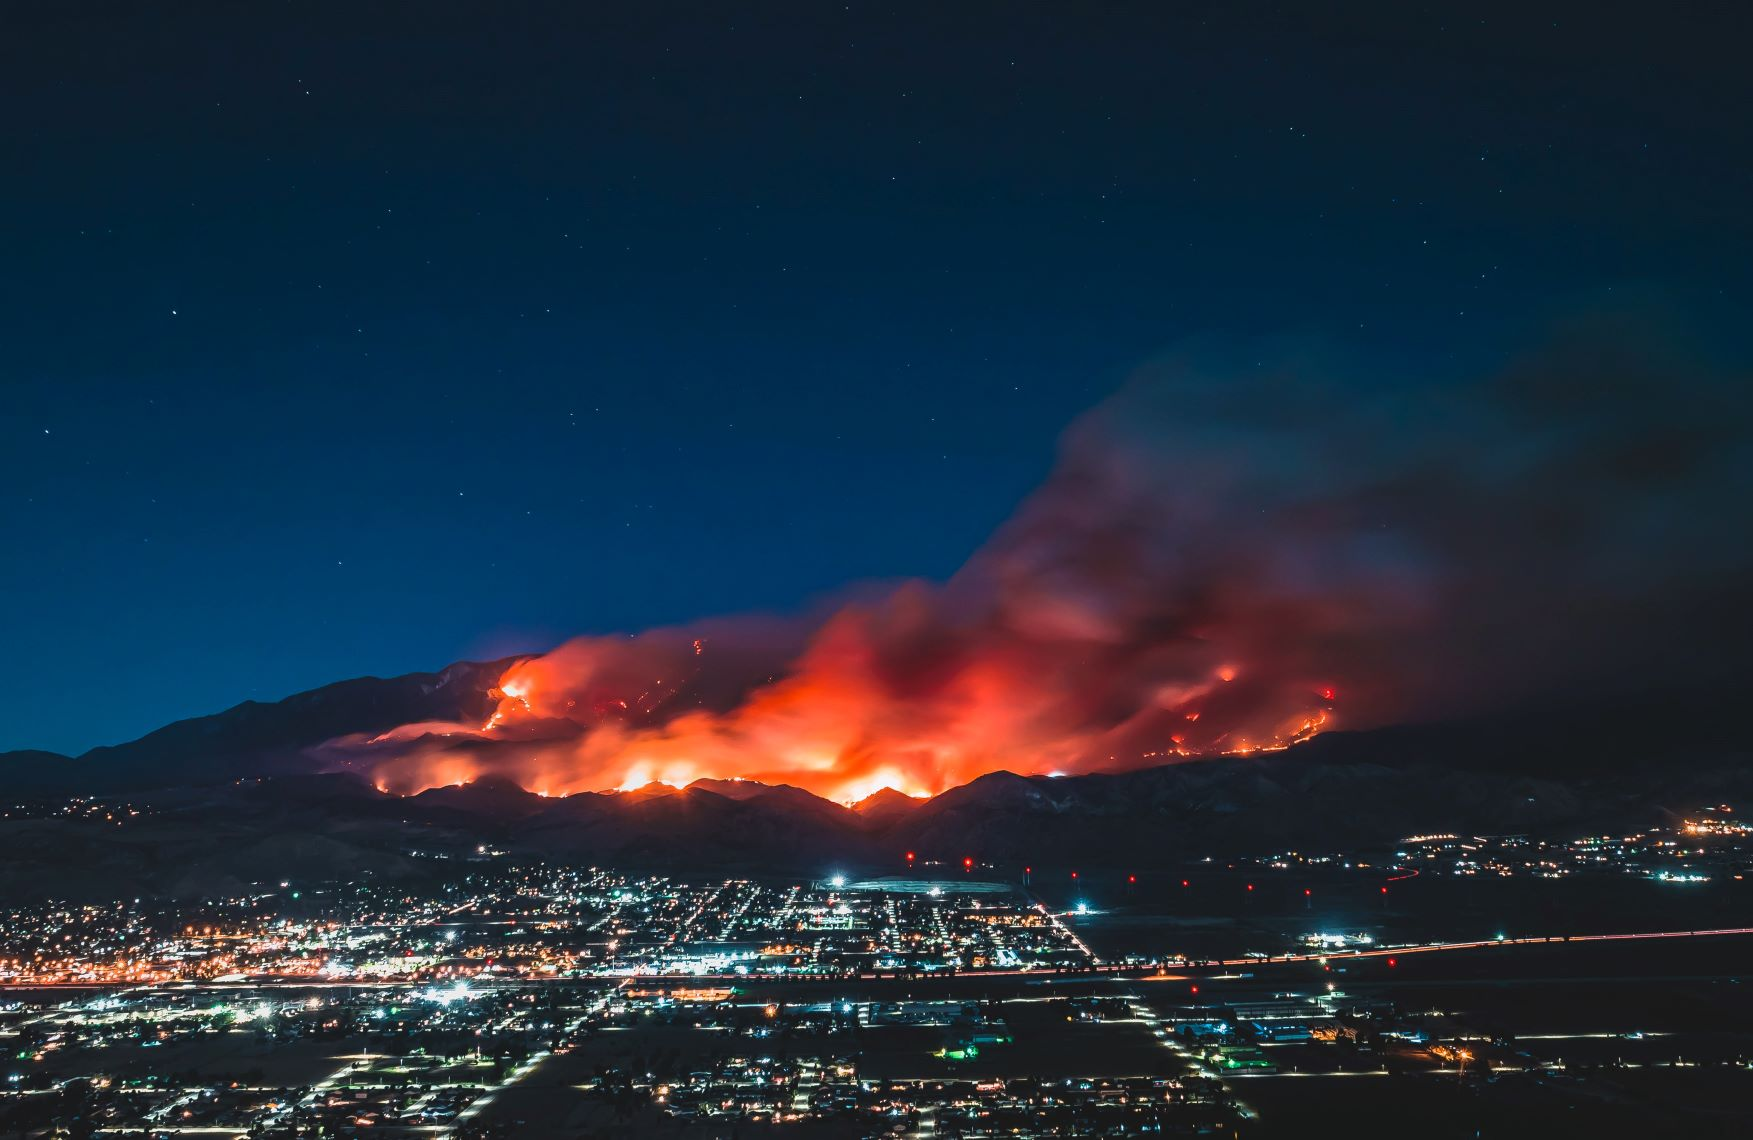 In an article about West Coast wildfires. The image is of a fire behind a California town.